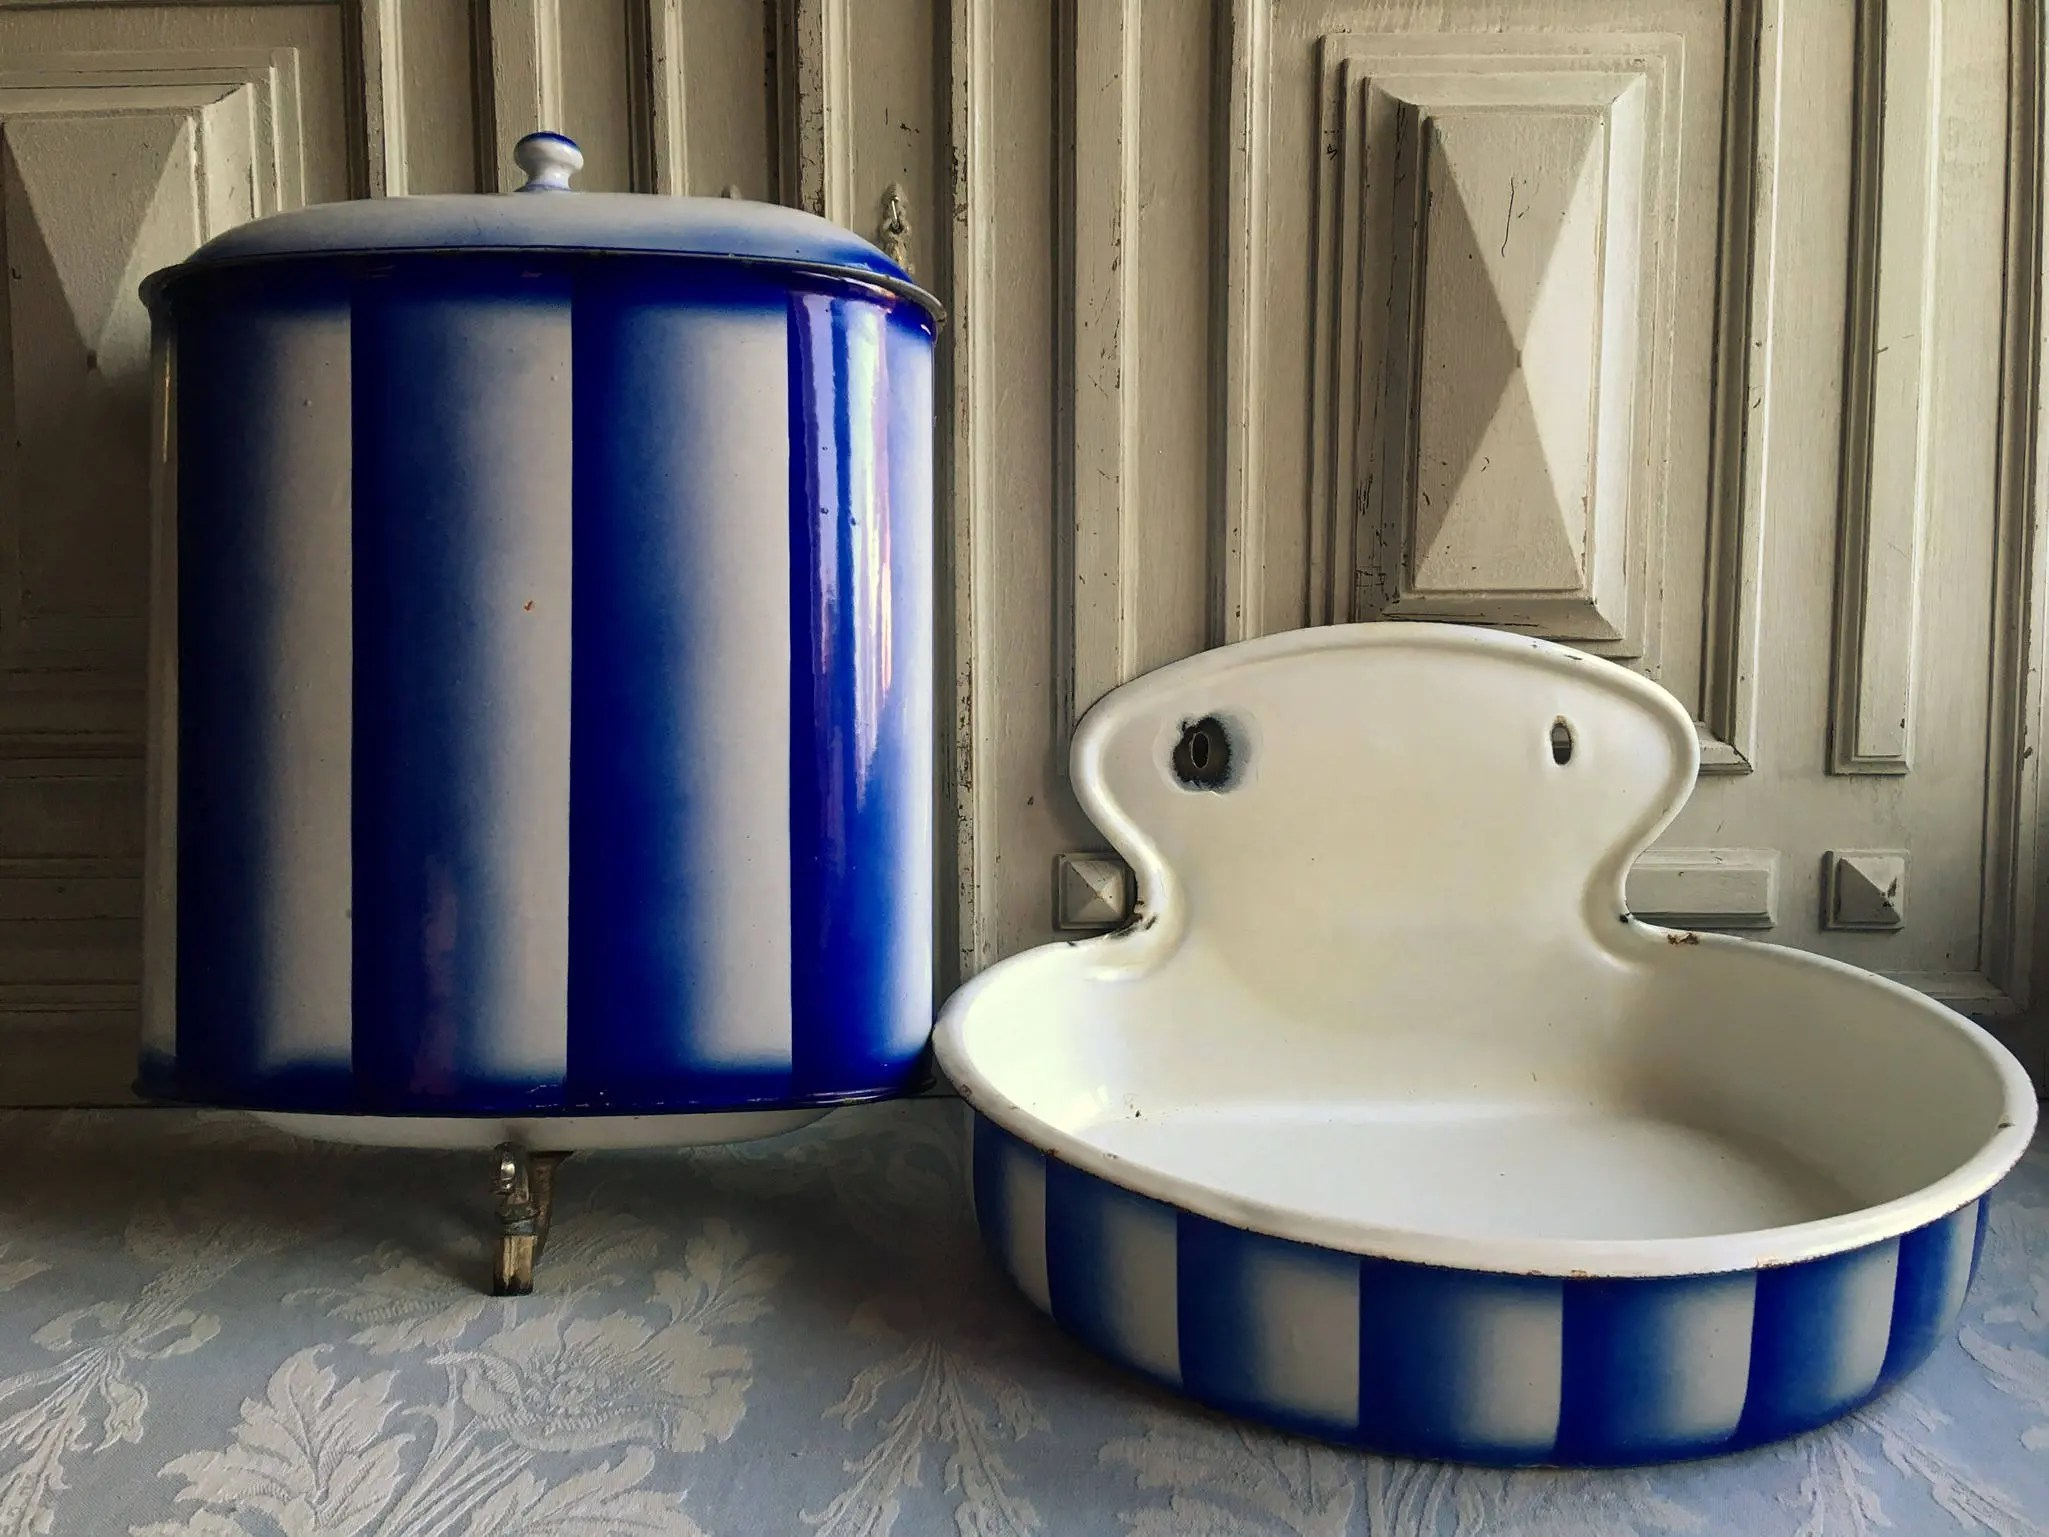 Lavabo Shabby Chic Enamel Fountain Antique French Lavabo Navy Blue White Stripes Garden Bathroom Basin Water Faucet Tap Ultramarine Blue 1930 S Country Kitchen